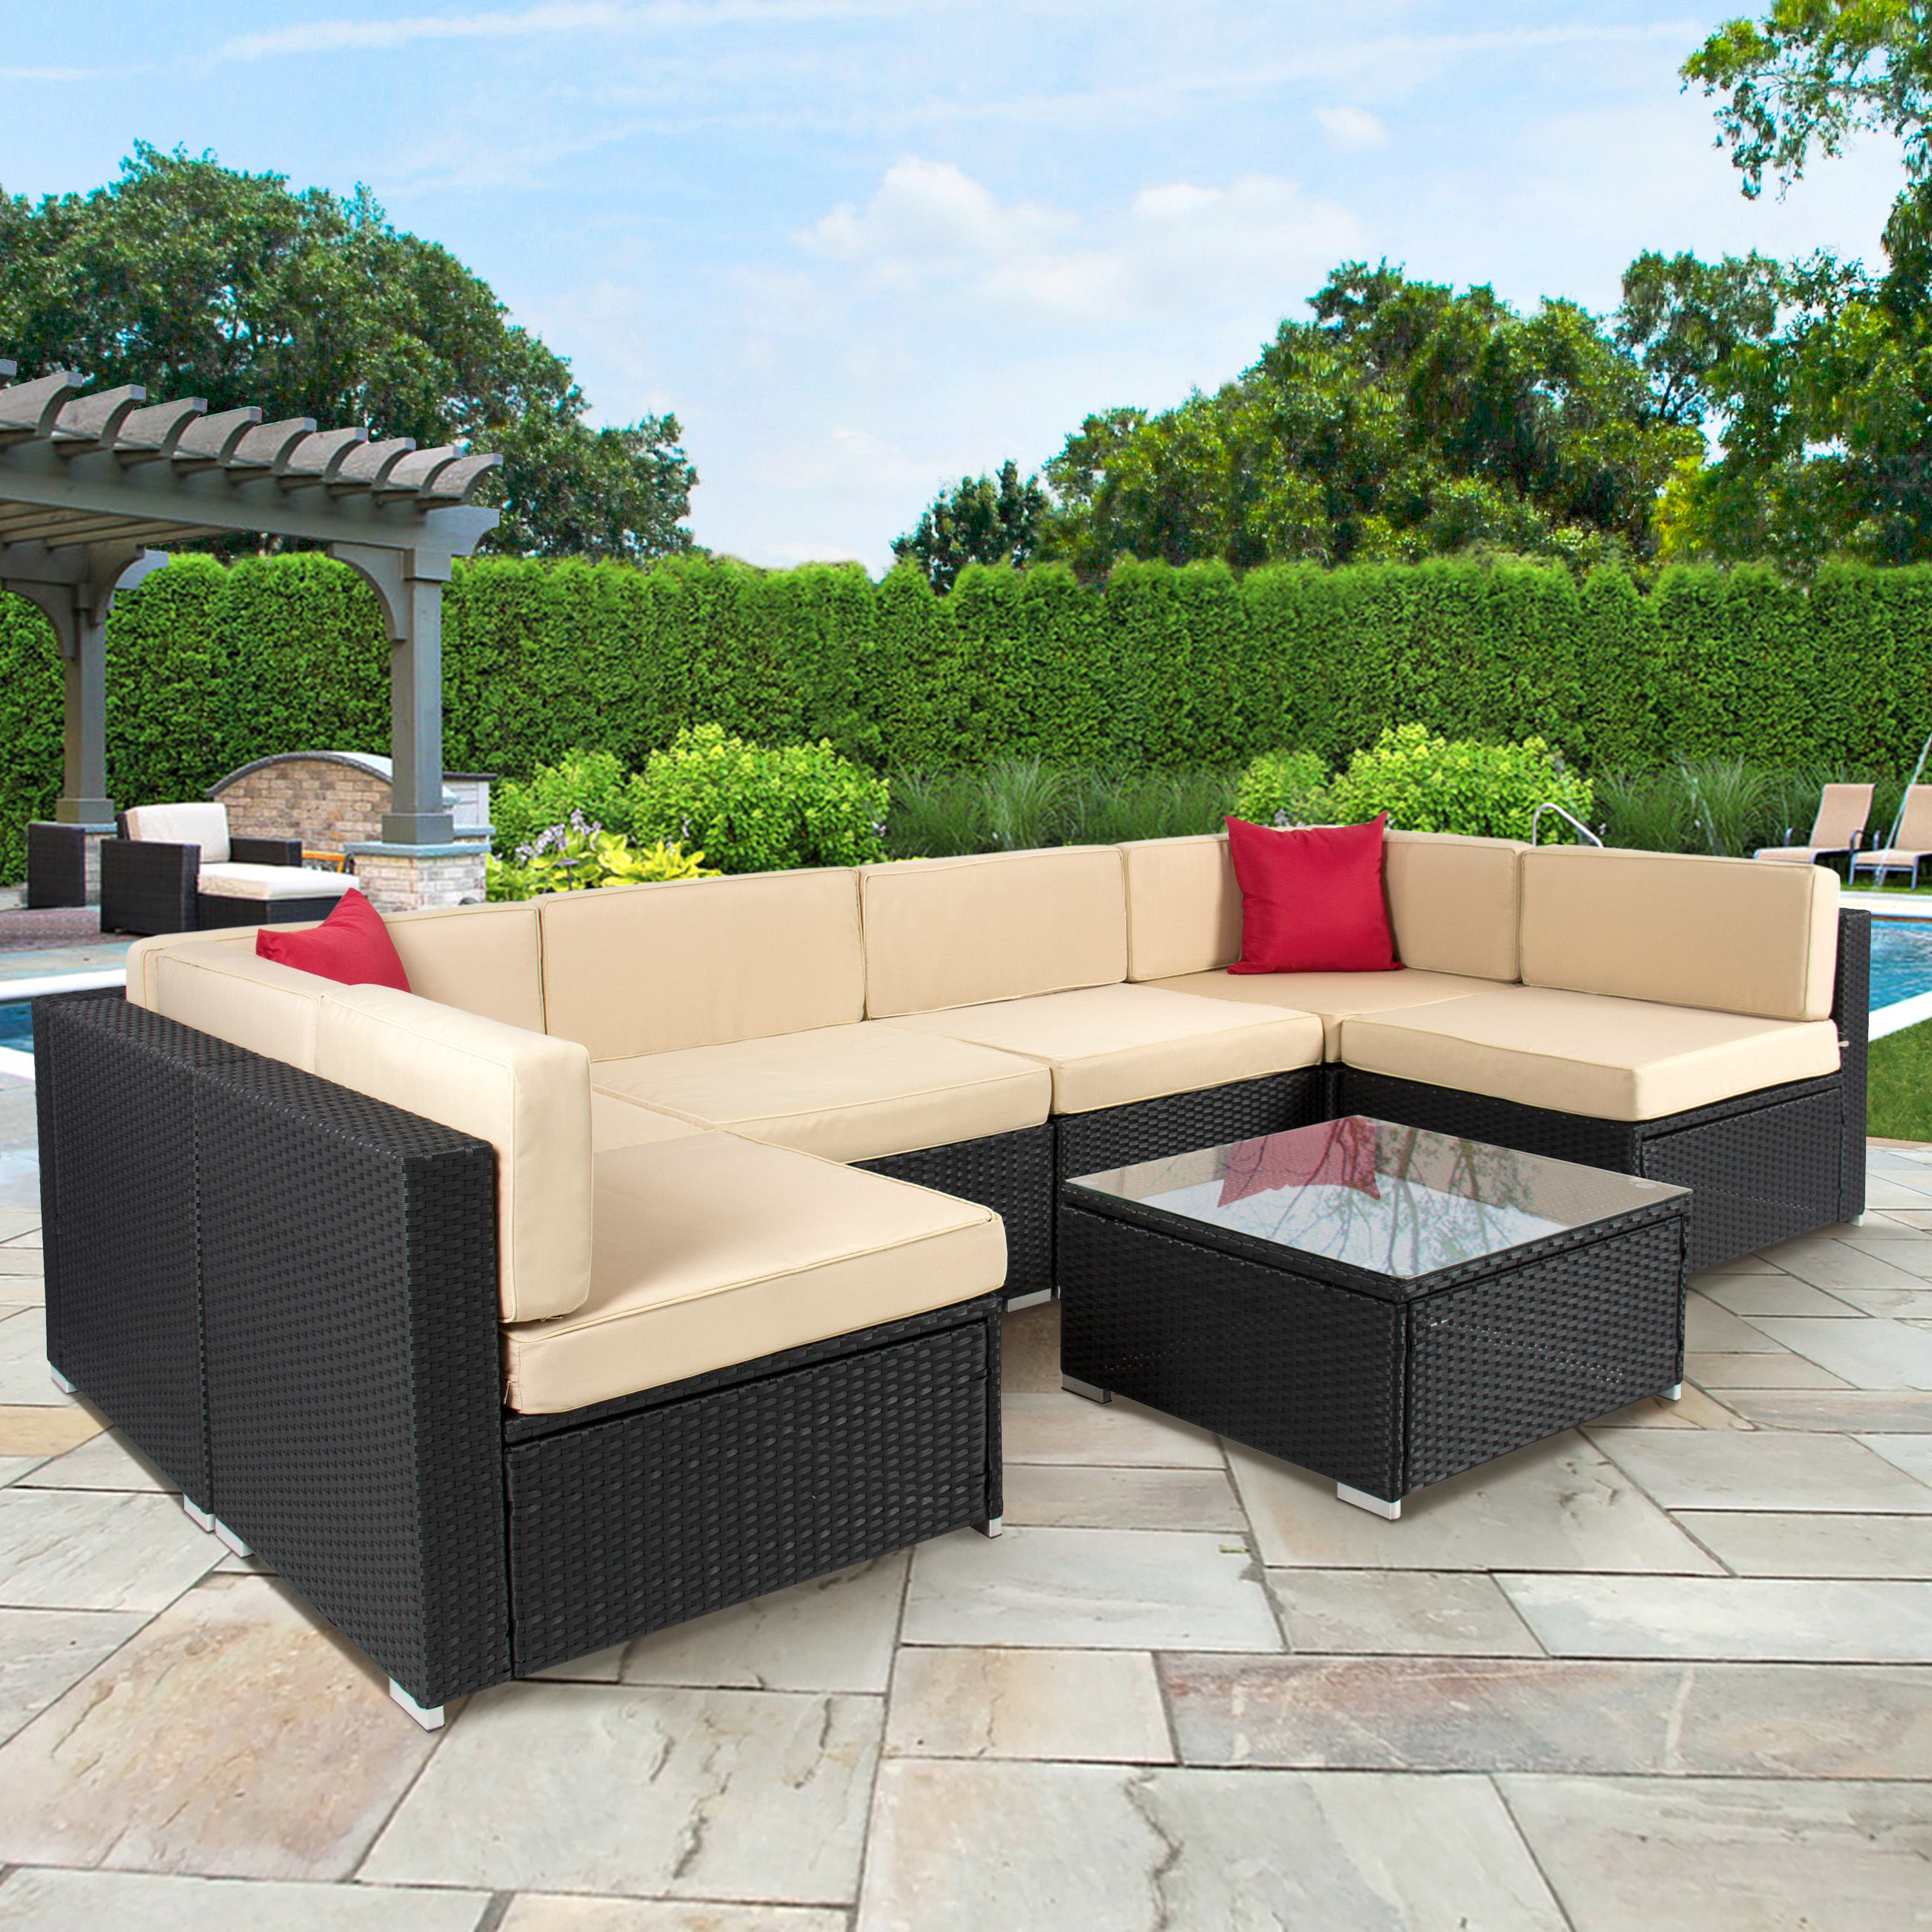 use rattan outdoor furniture for your